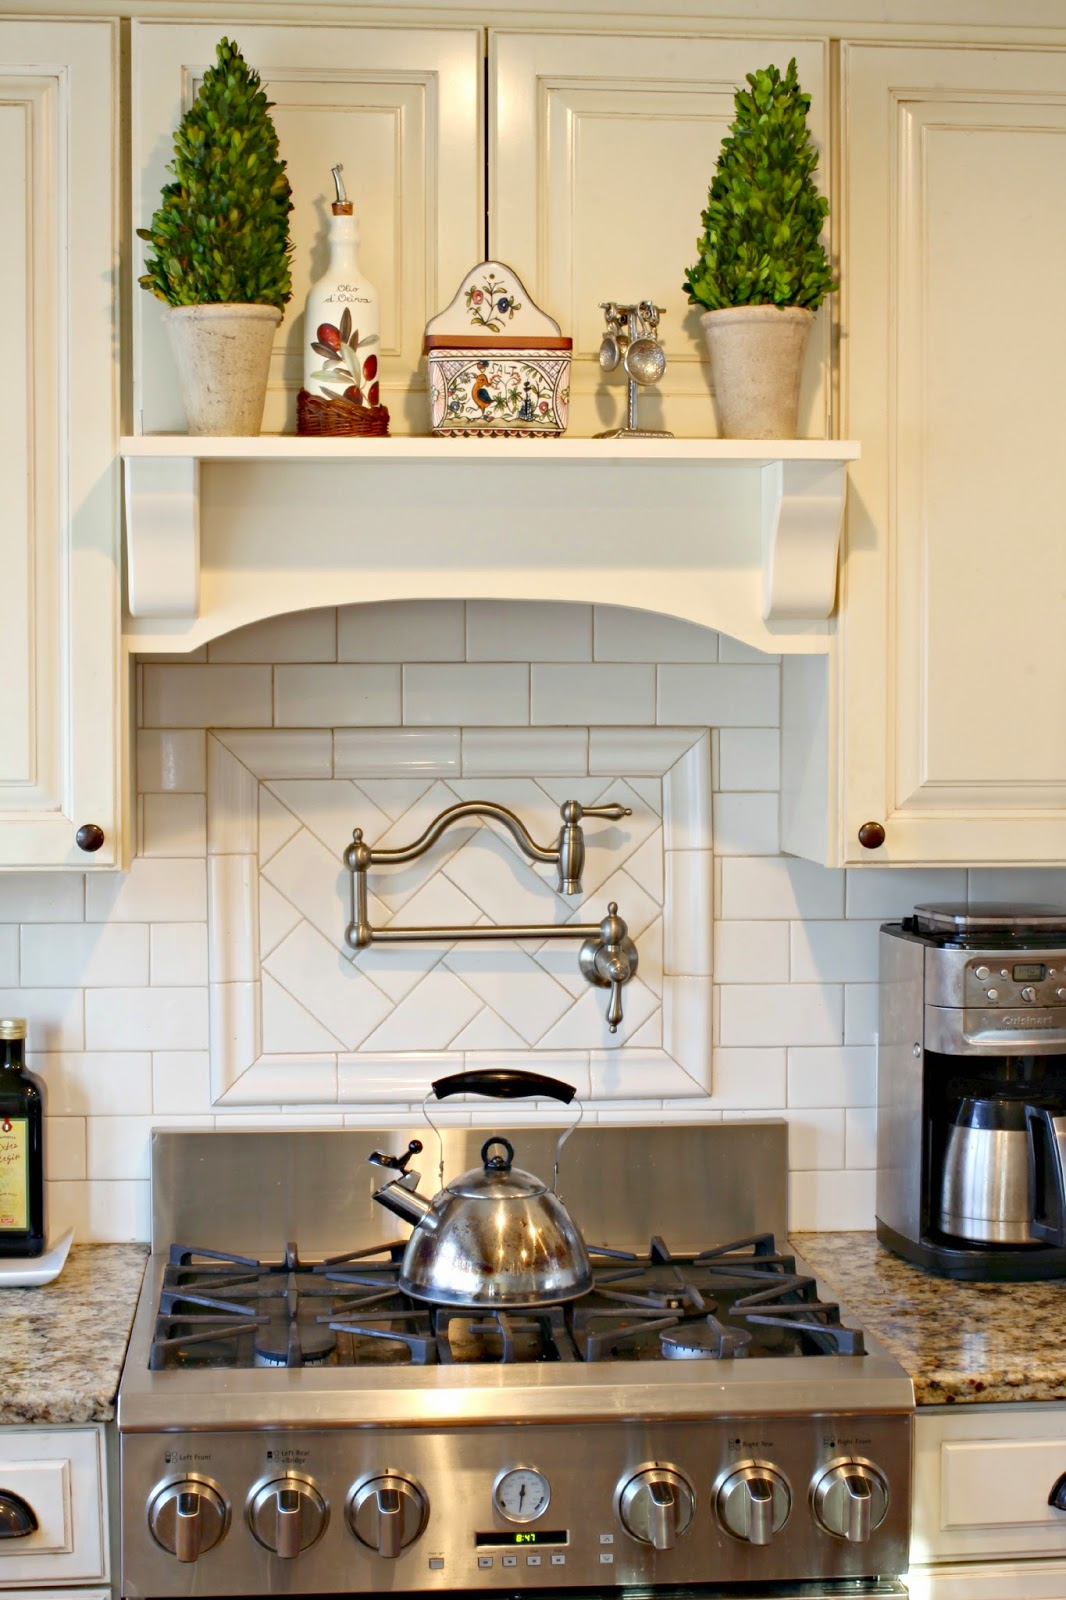 Hand painted salt box from Williams Sonoma in kitchen in DIY mantel hood-www.goldenboysandme.com